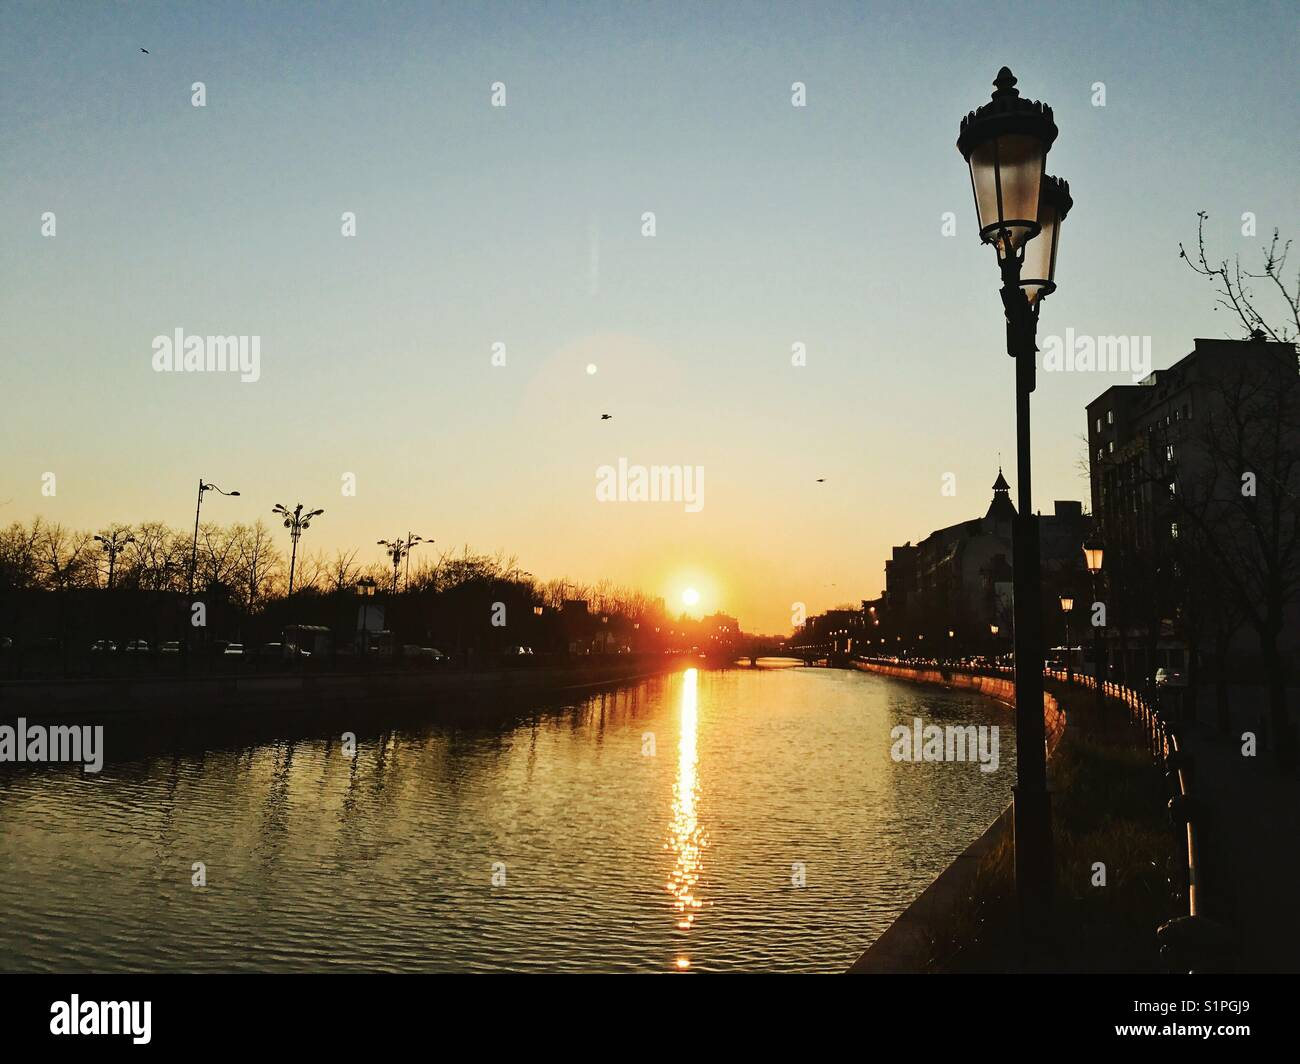 Bucharest at sunset. - Stock Image